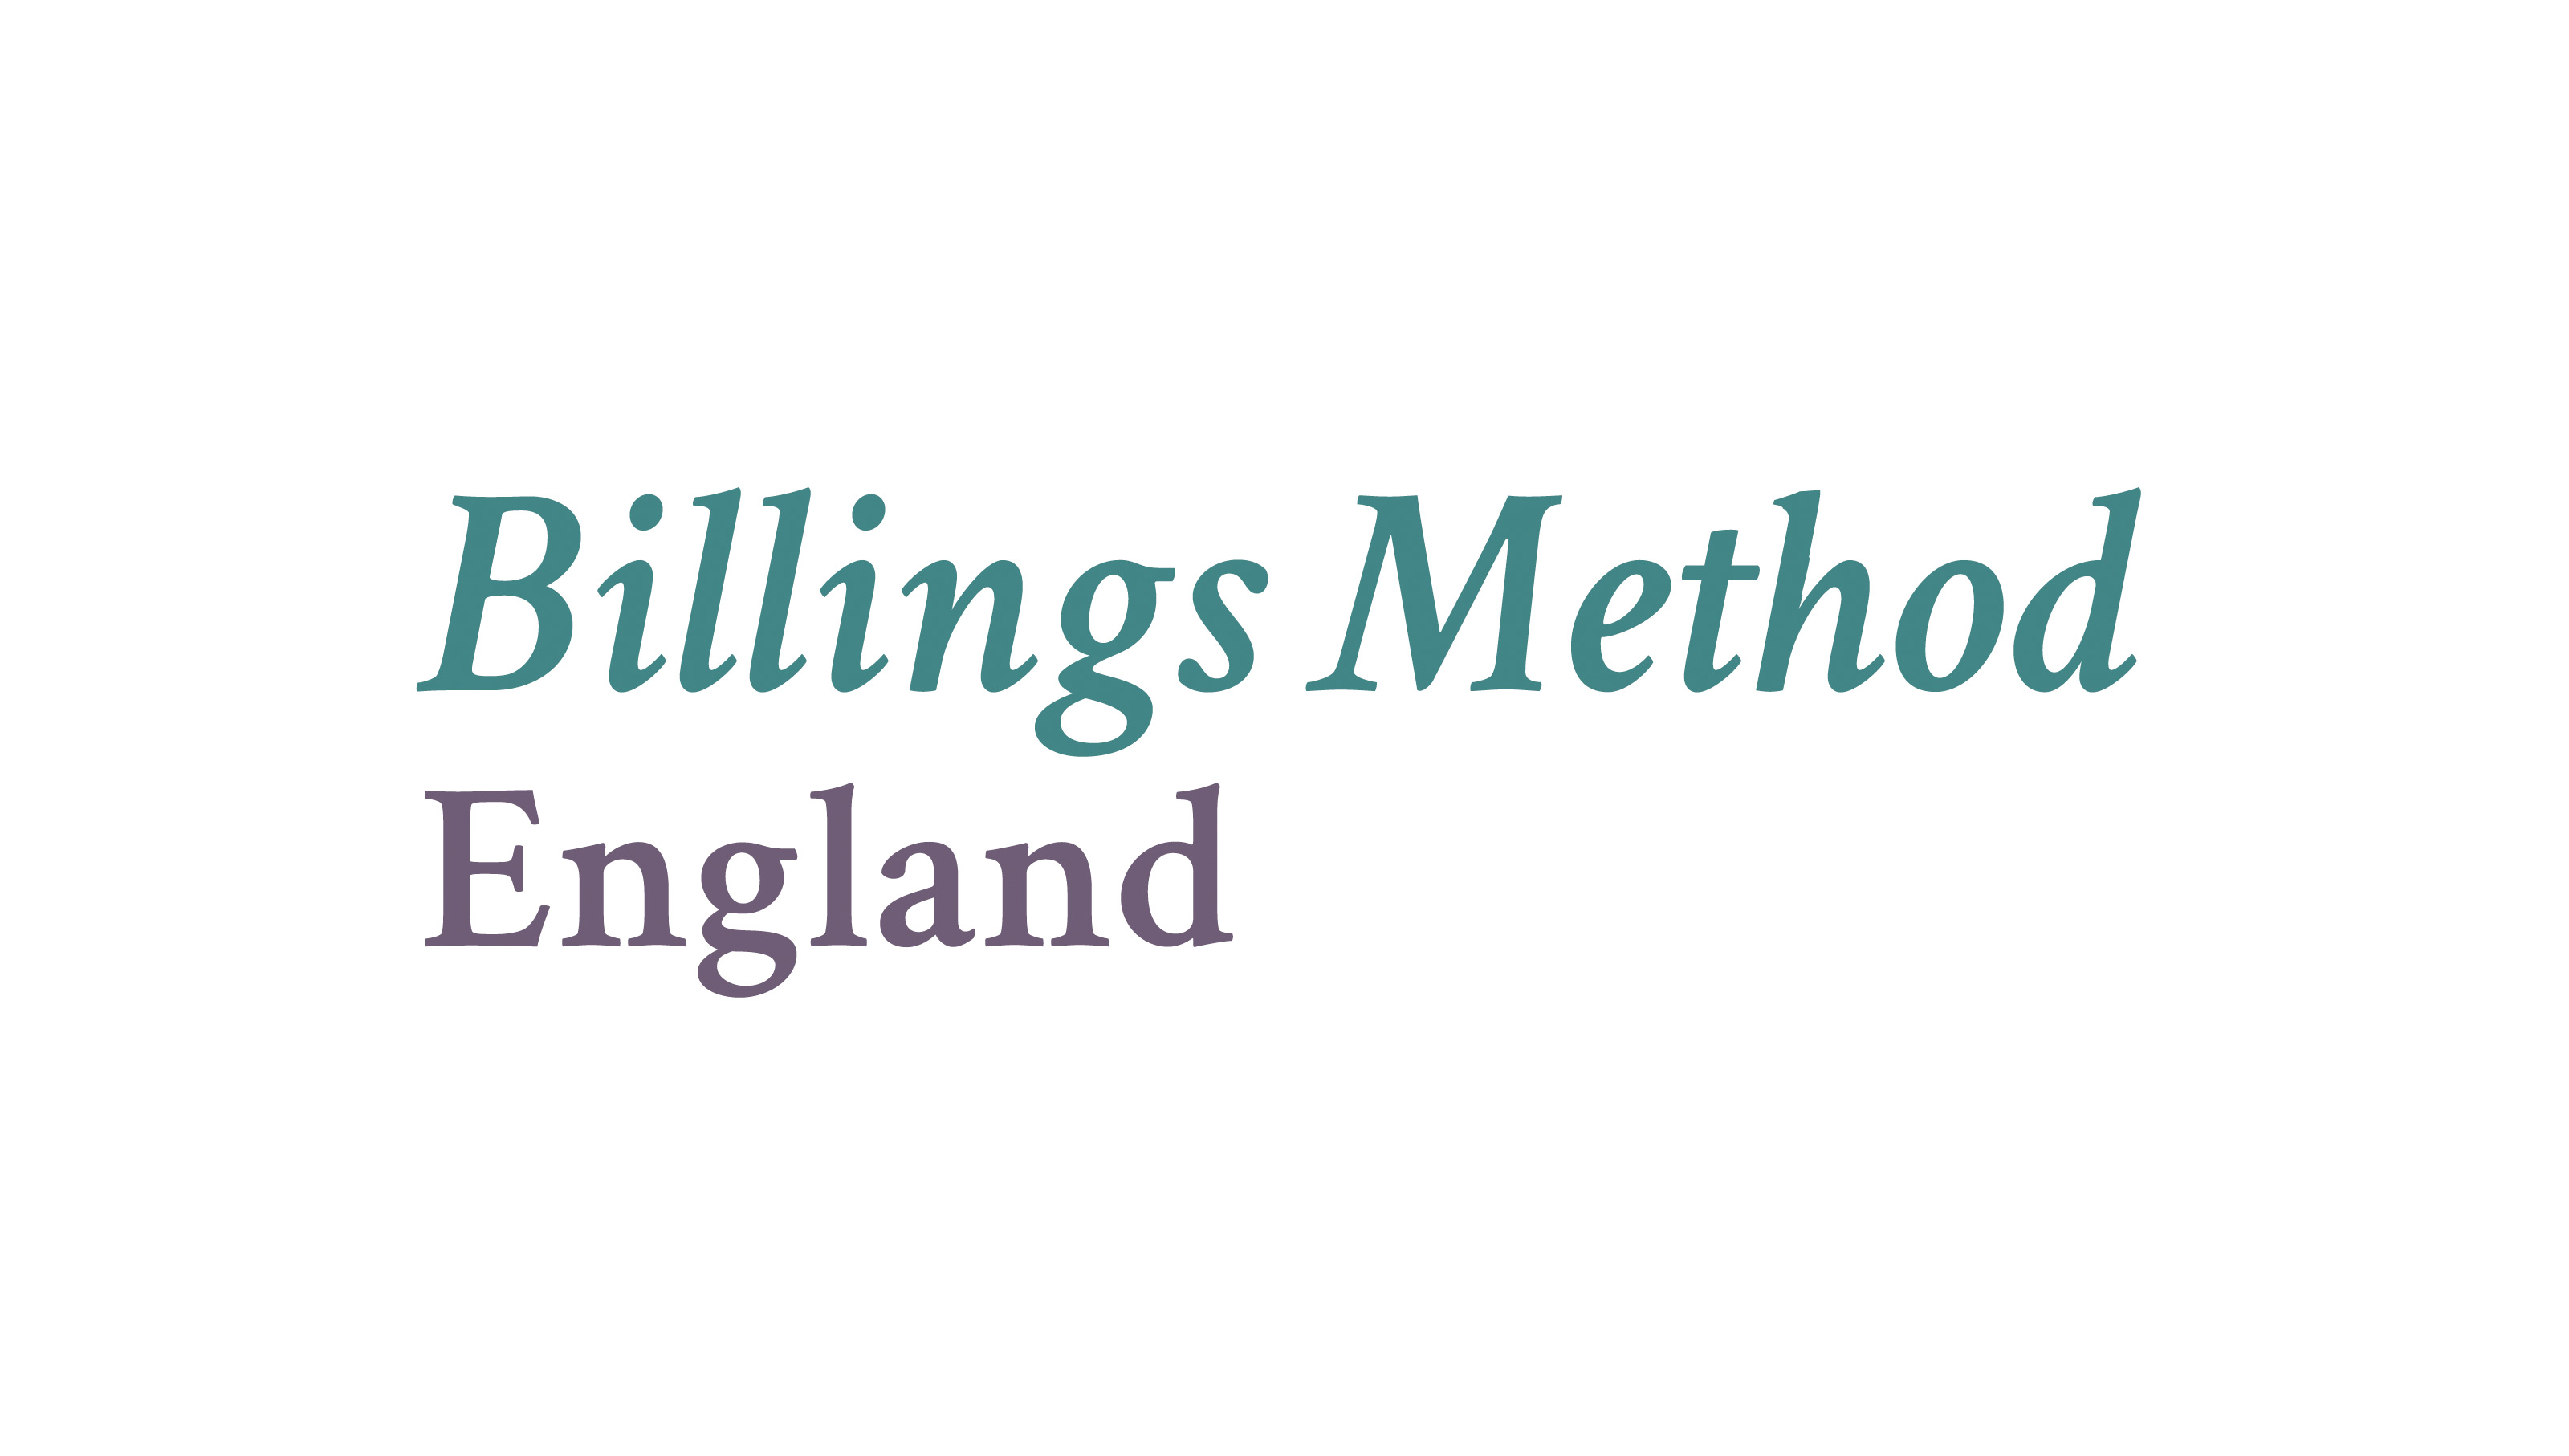 Billings Method England